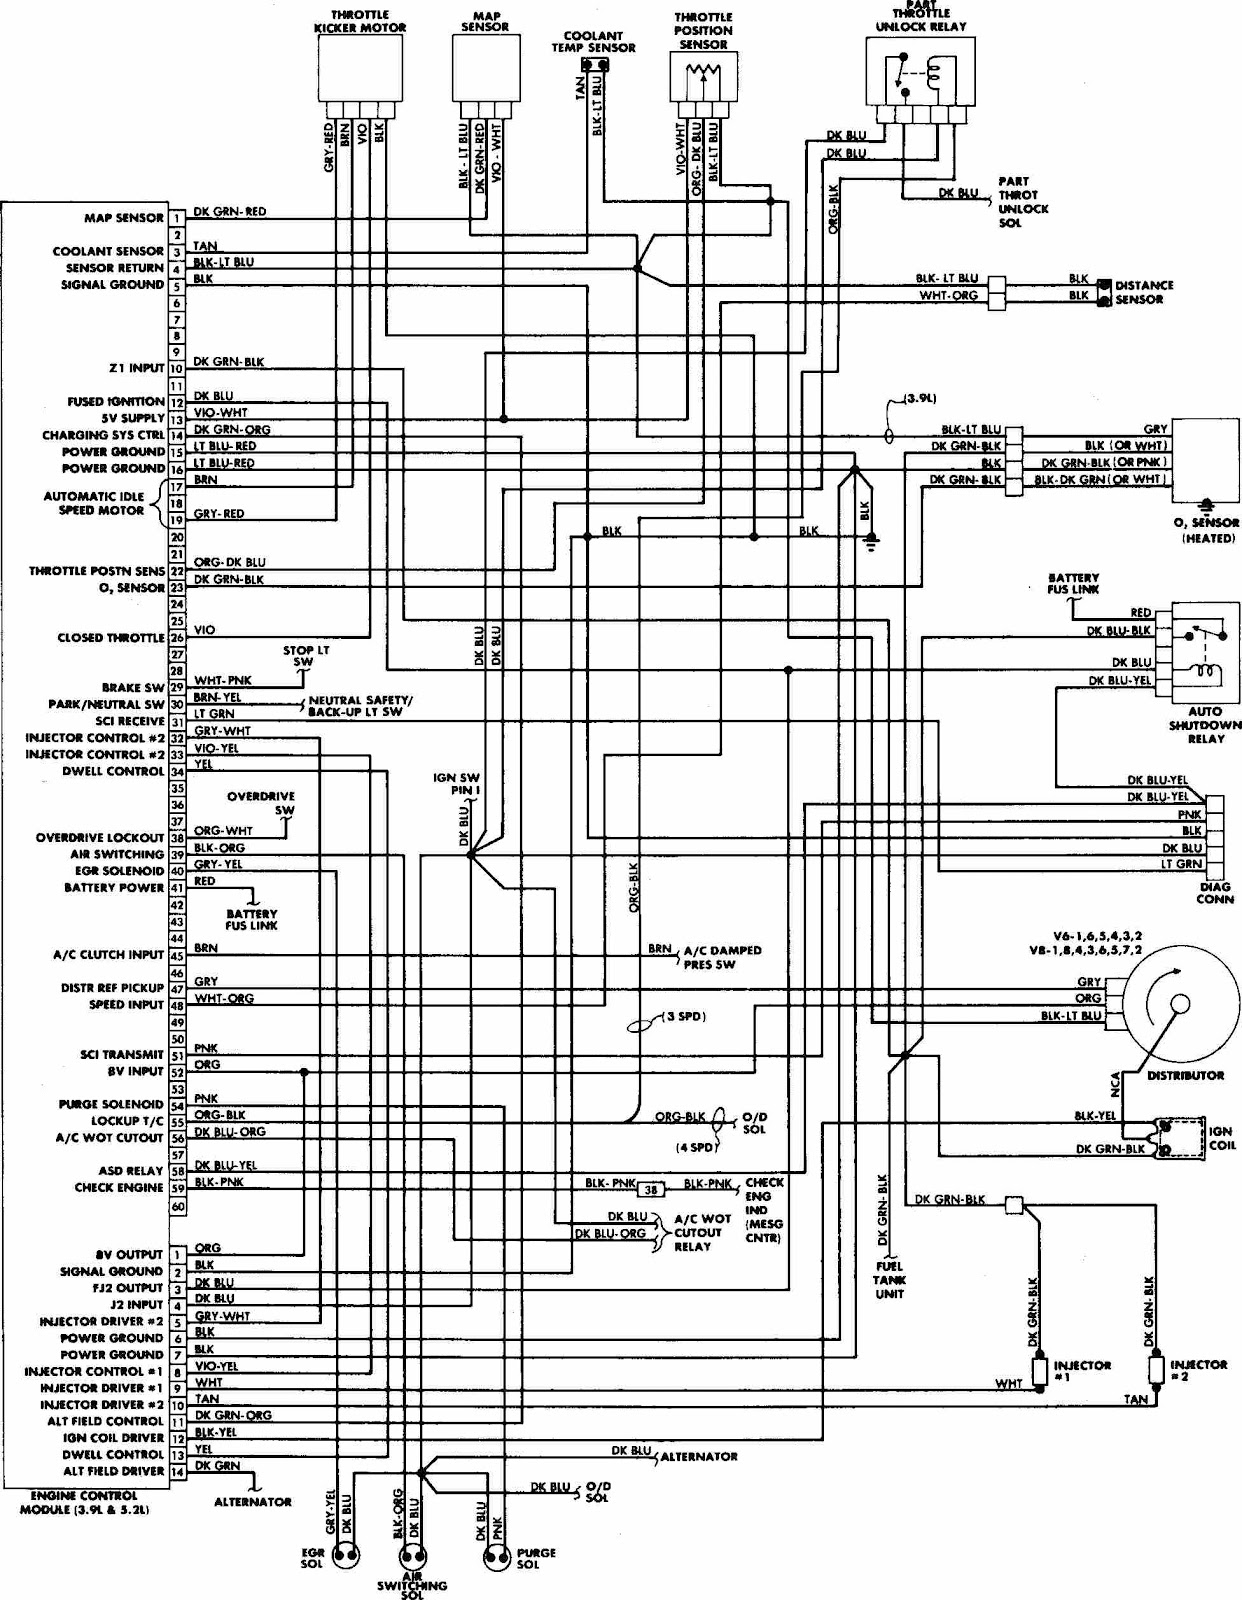 1988 Gmc 3500 Truck Wiring Diagram : 34 Wiring Diagram